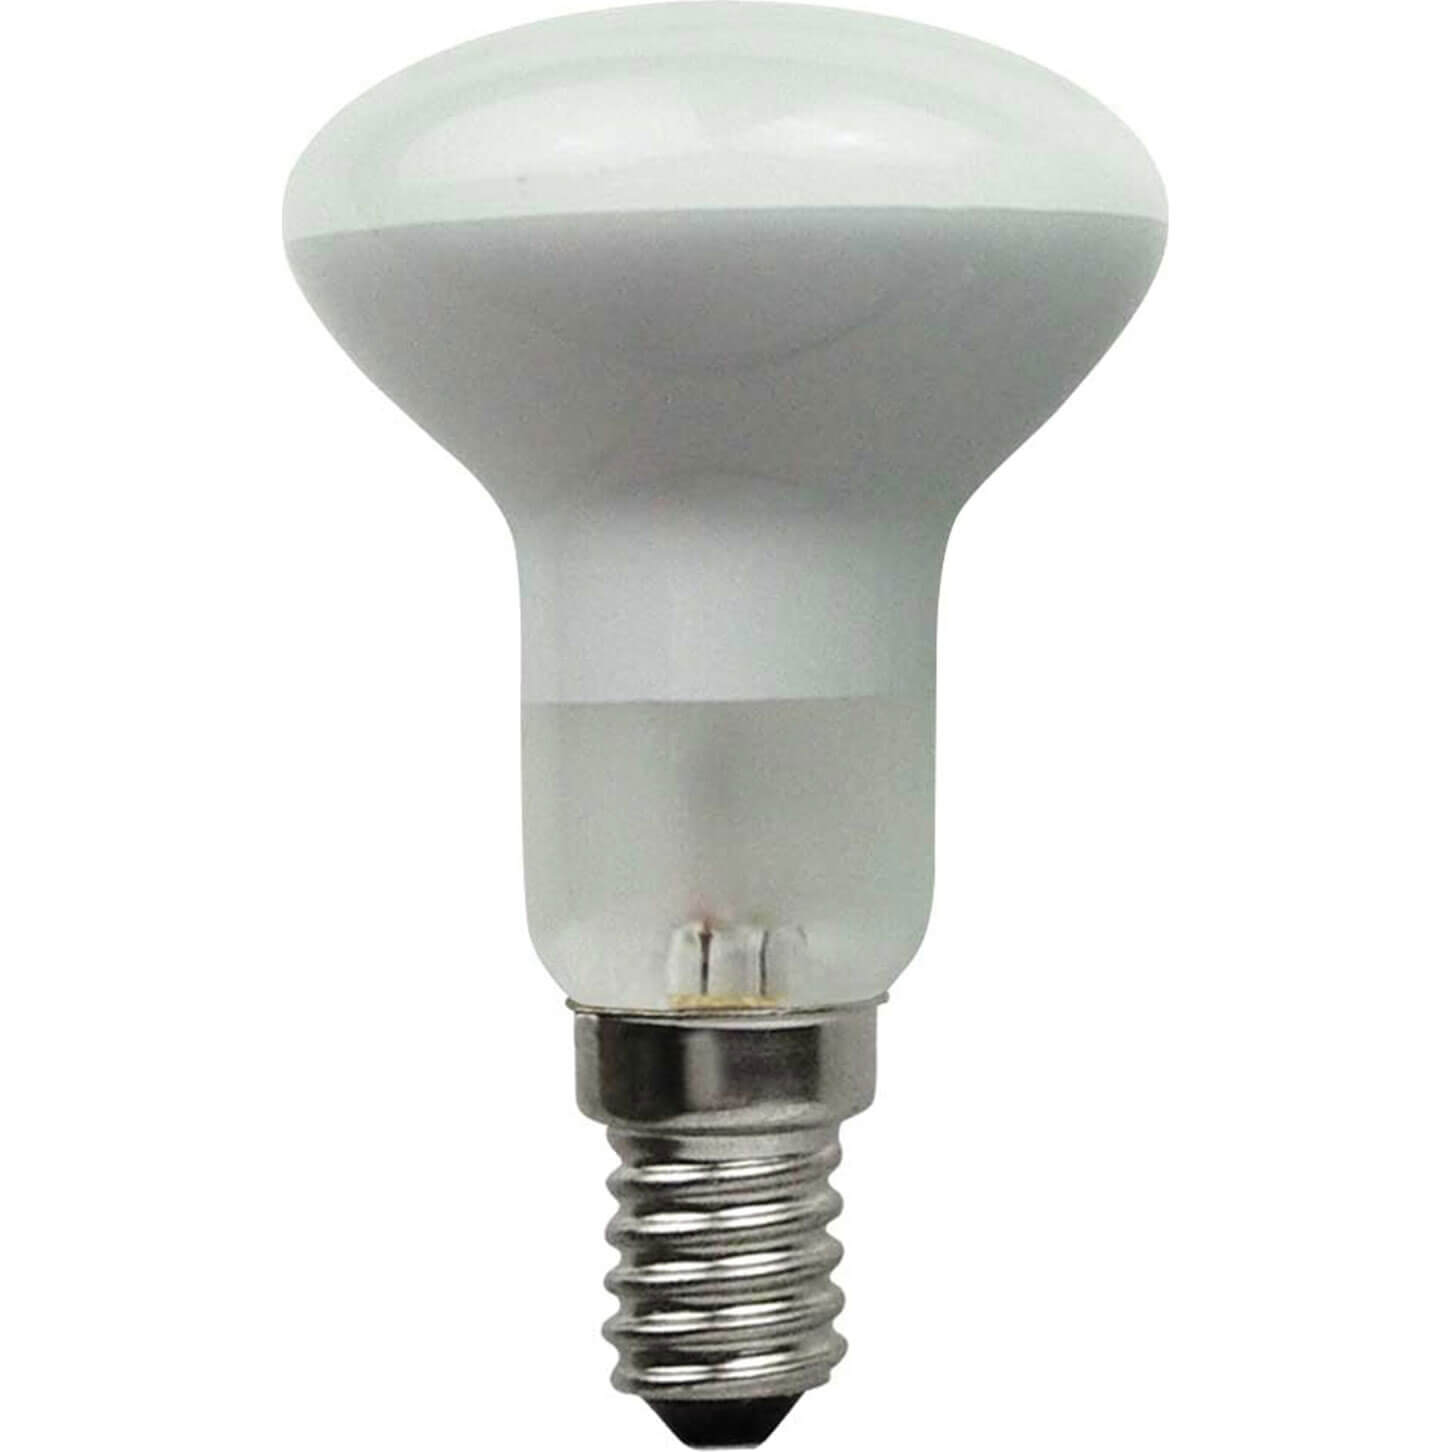 Buy Cheap Reflector Bulb Compare Lighting Prices For Best Uk Deals